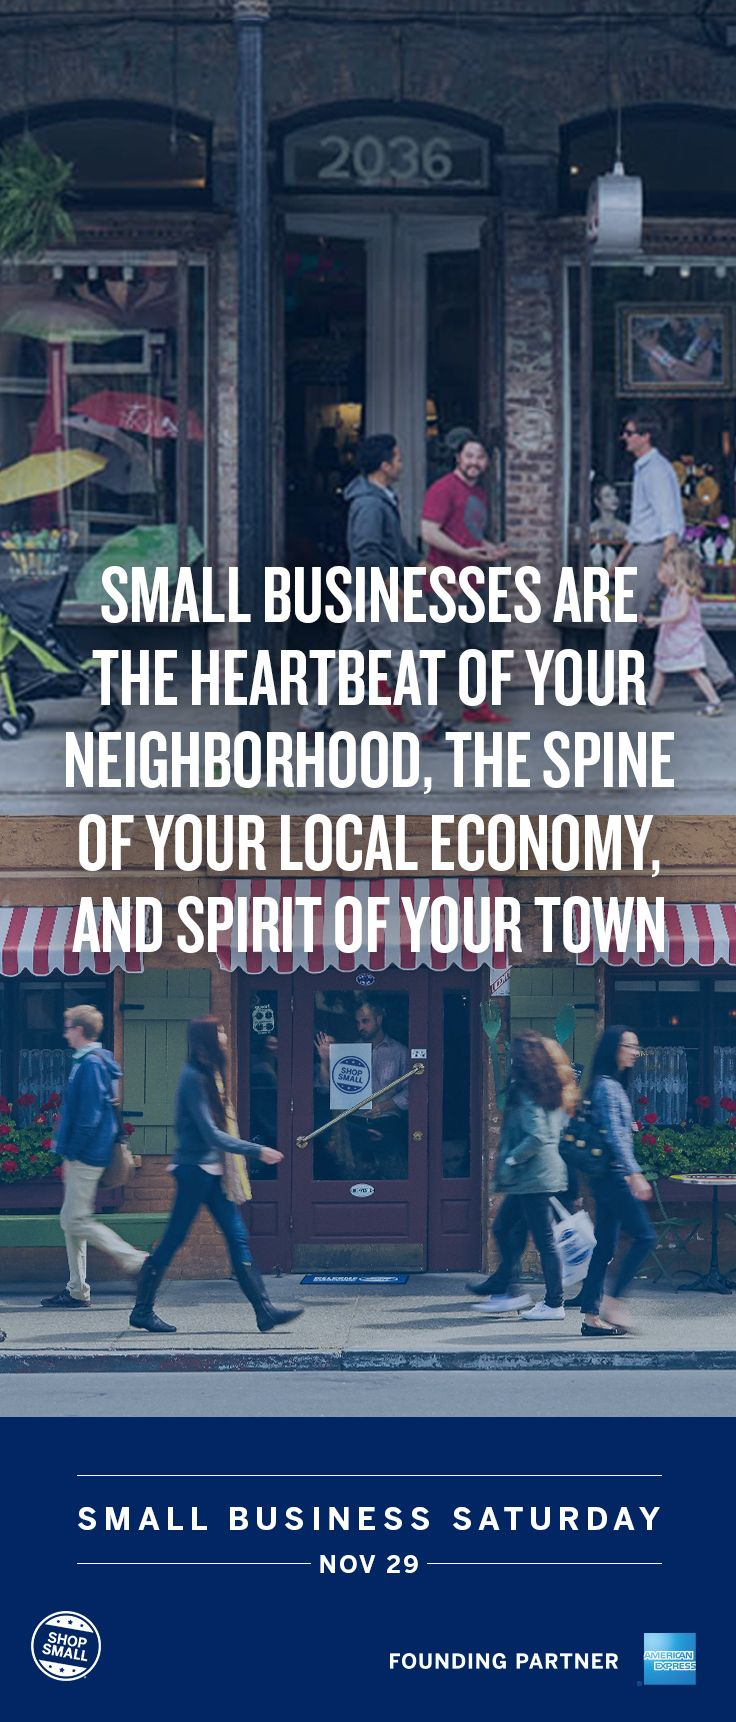 Shopping at a local small business is a great way to support your neighborhood and help your local economy thrive. Hit main street on Small Business Saturday and #ShopSmall on Nov 29.